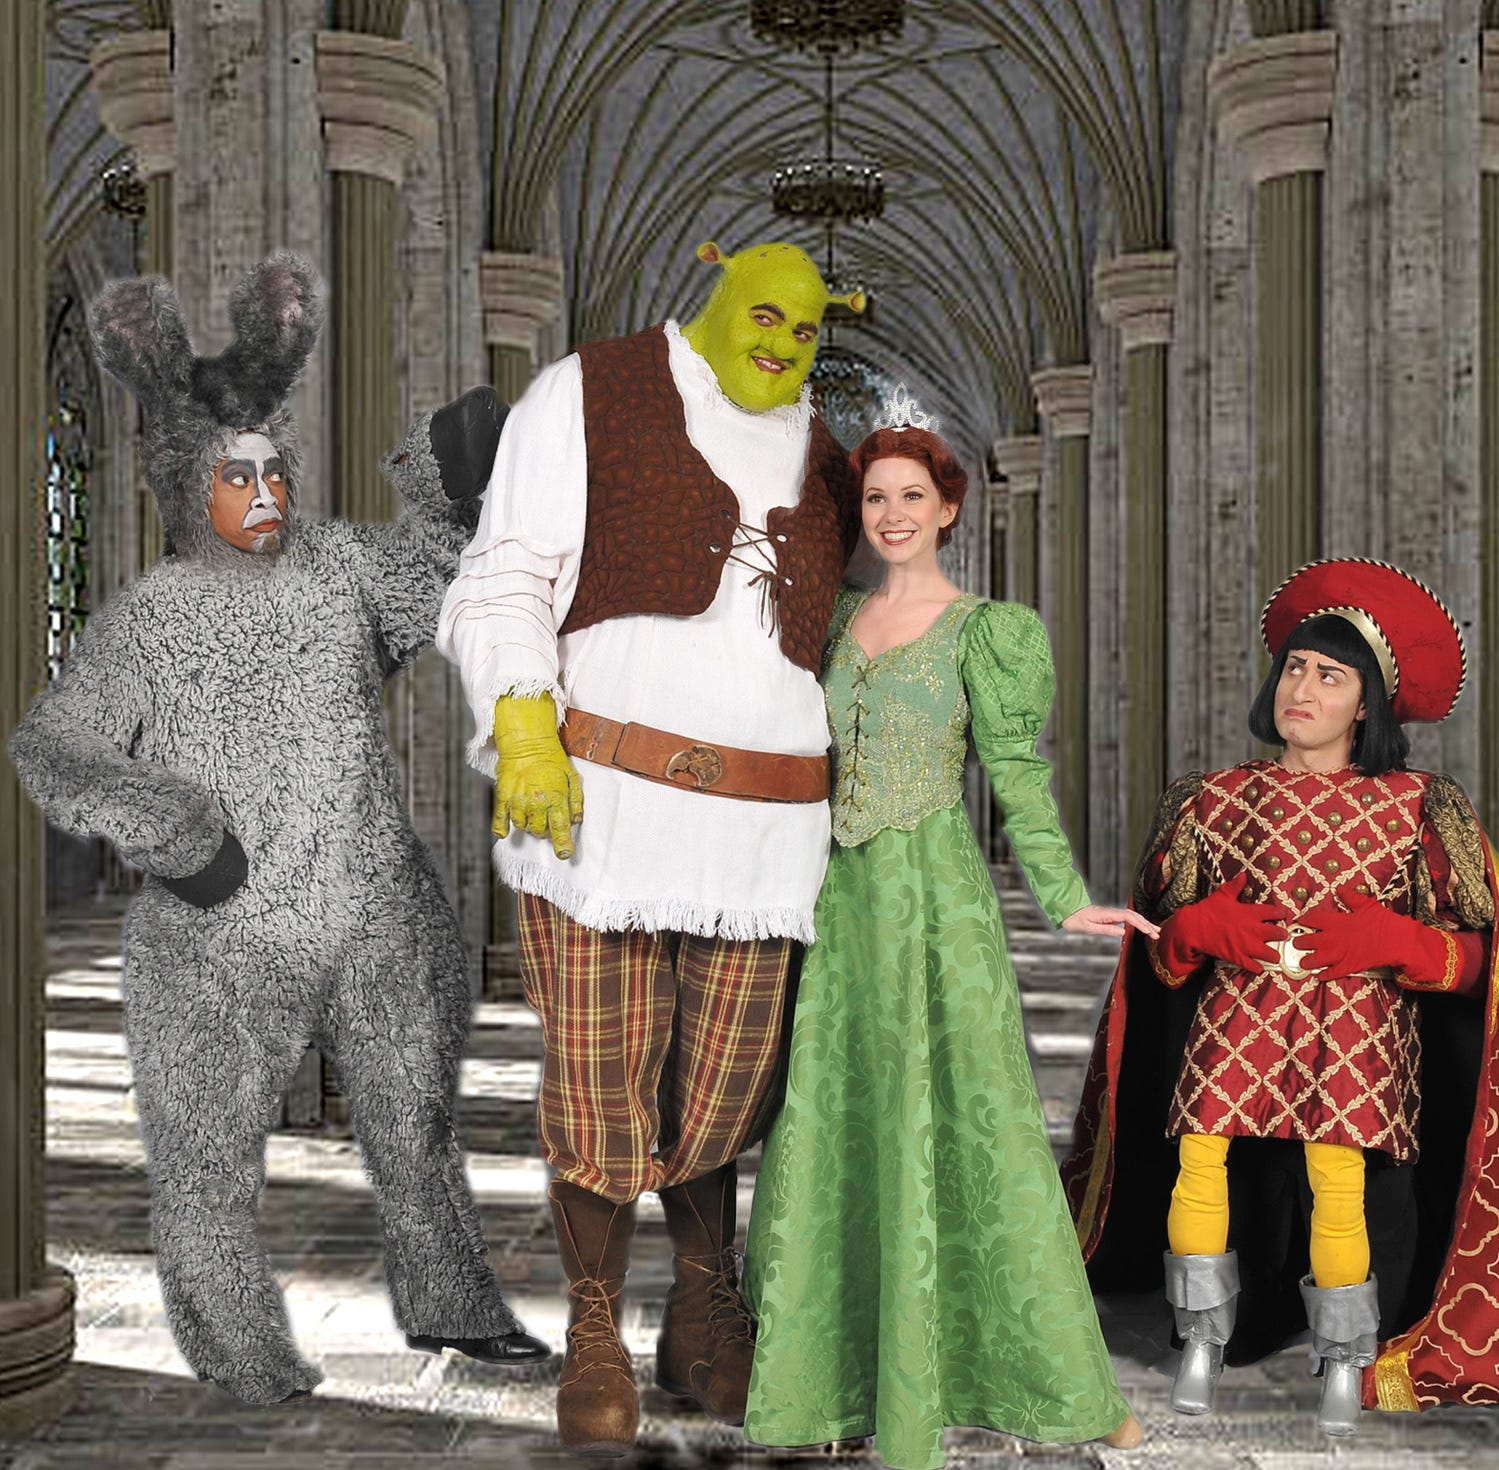 """Shrek the Musical"" opens Friday, launching 5-Star Theatrical's 2018-19 season, now led by Patrick Cassidy as the artistic director. The cast of ""Shrek the Musical"" includes, from left, Lawrence Cummings, Trent Mills, Alison Woods and Marc Baron Ginsburg."